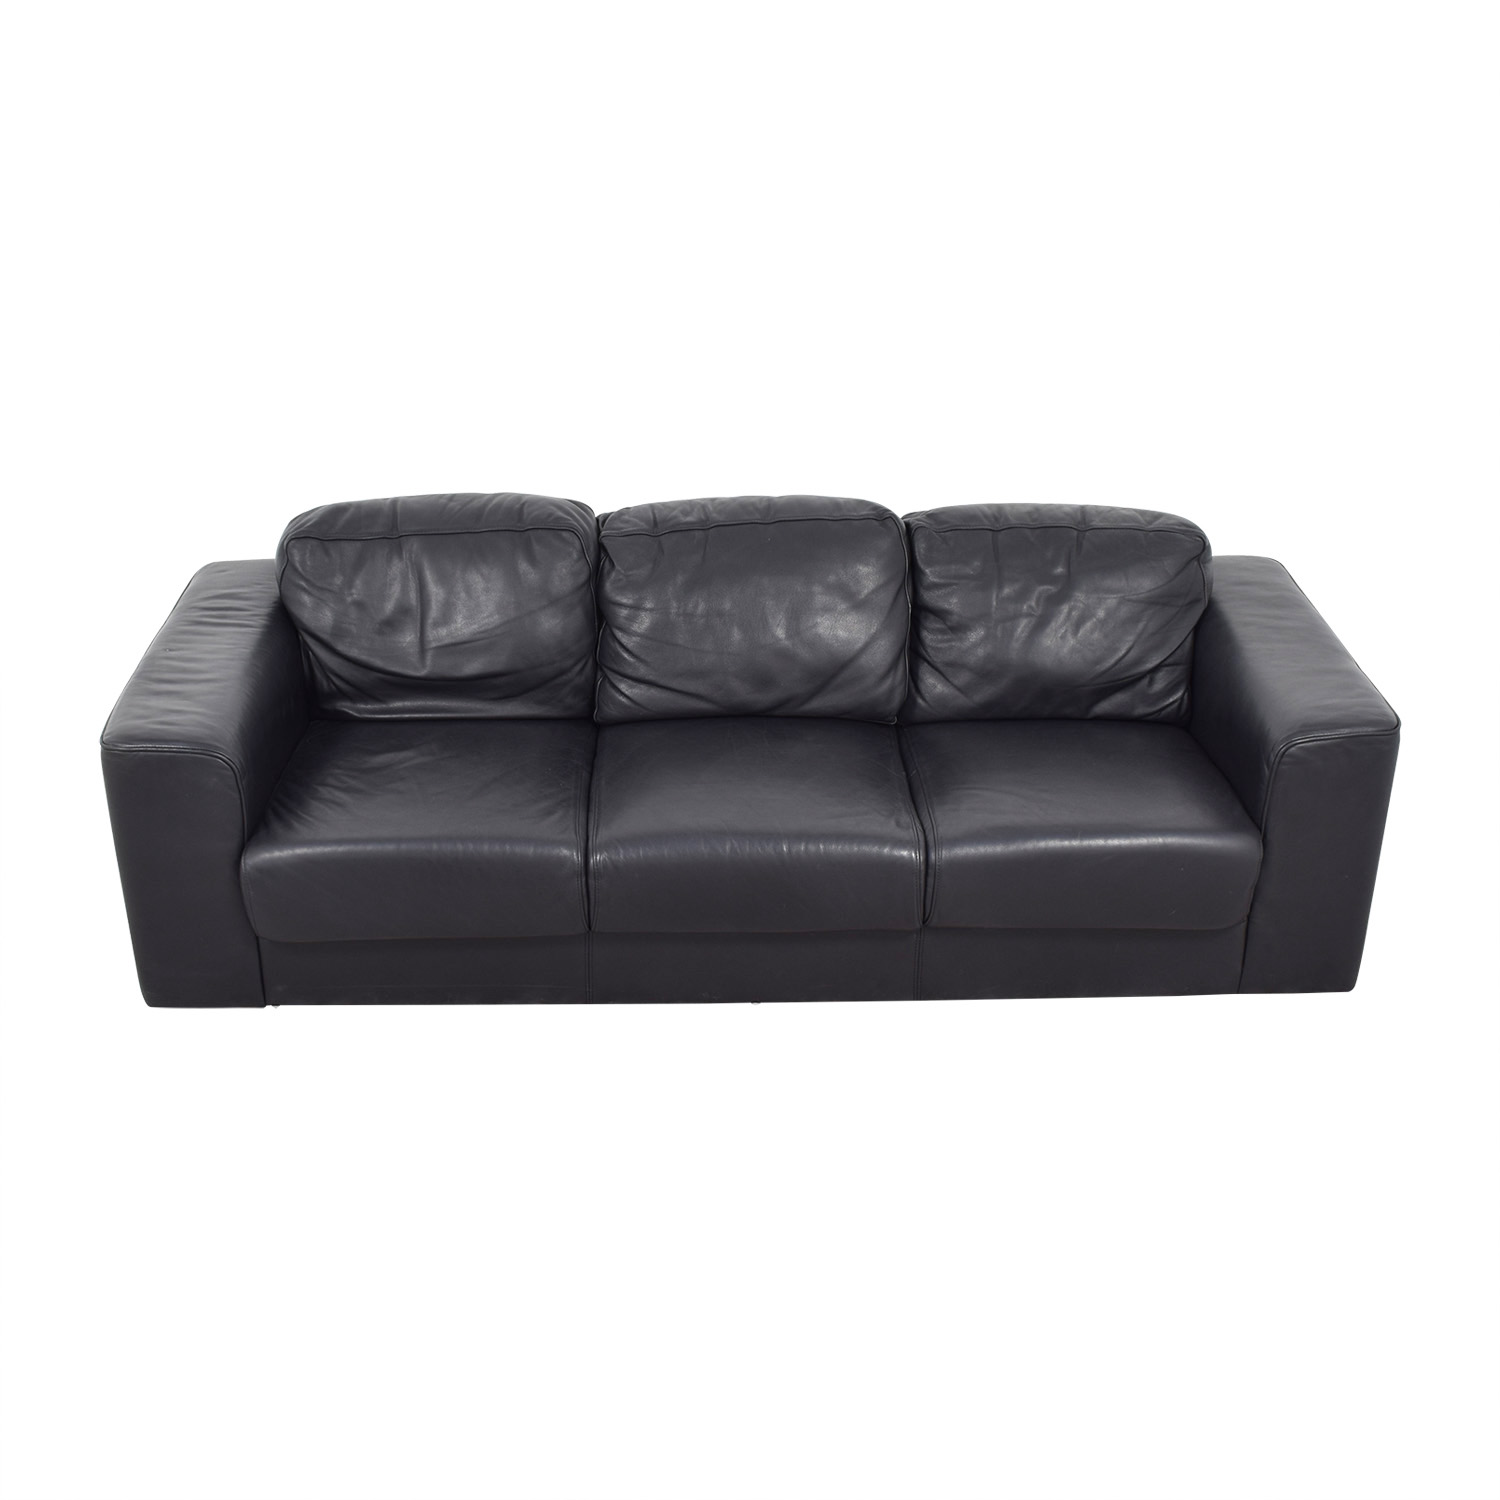 Black Leather Three-Cushion Sofa used